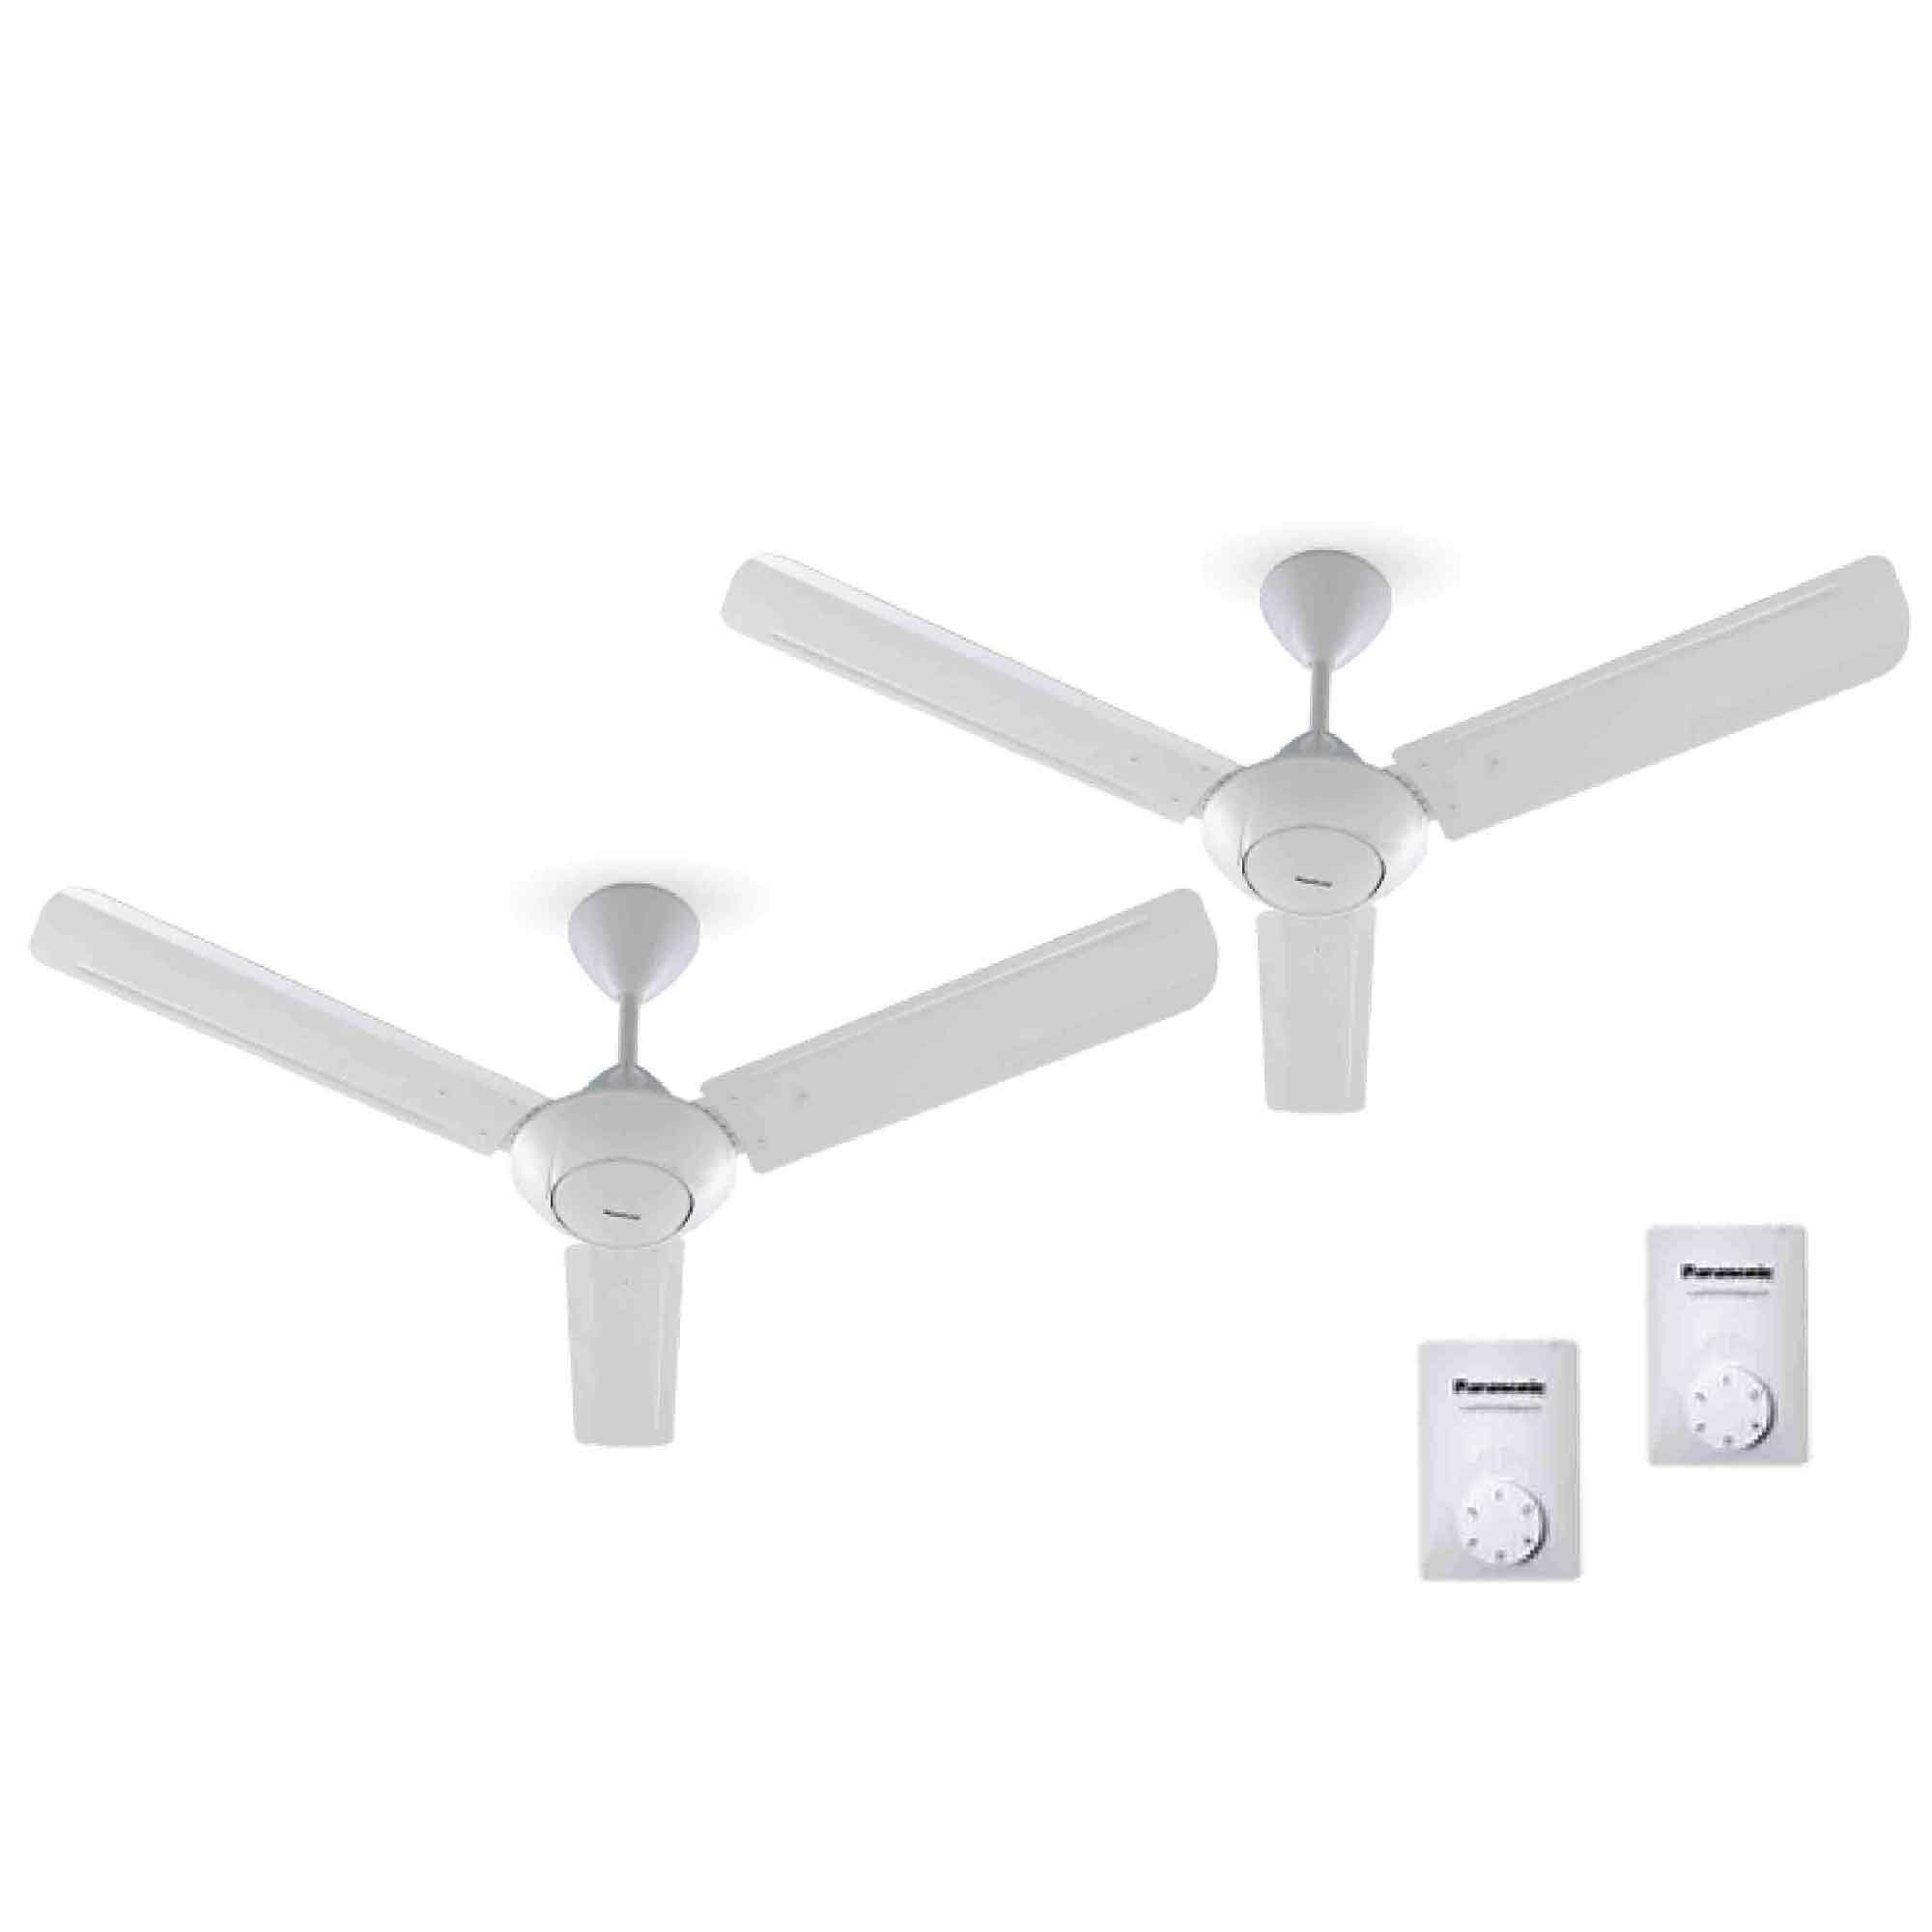 pendant stunning quiet bathroom light exhaust whisper system hom gorgeous ultra and mounting single blades fan ceiling mesmerizing with collections fans bath panasonic wiring